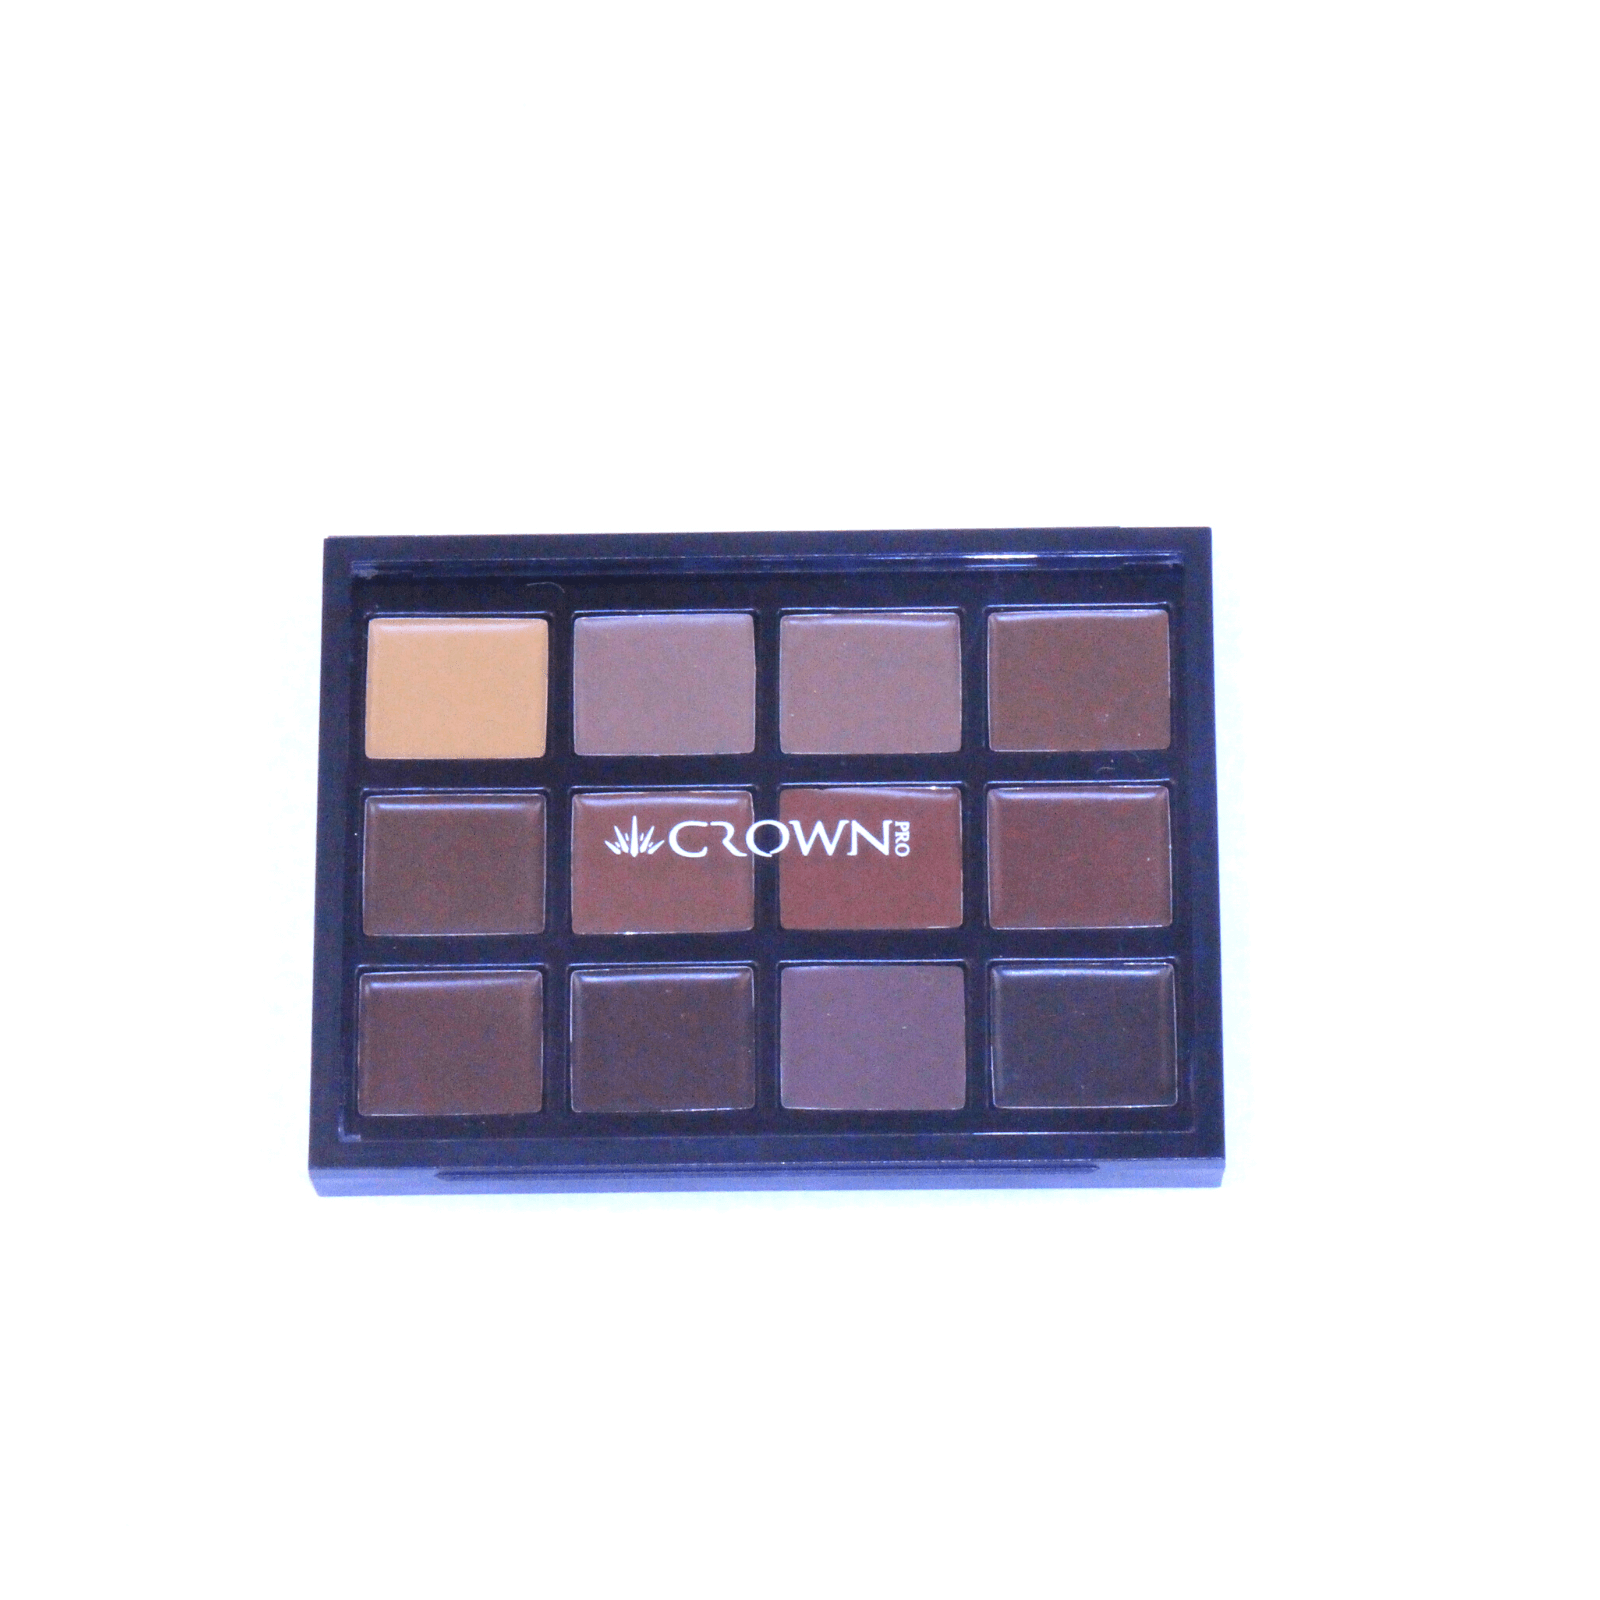 Eyebrow Palette - Crownbrush